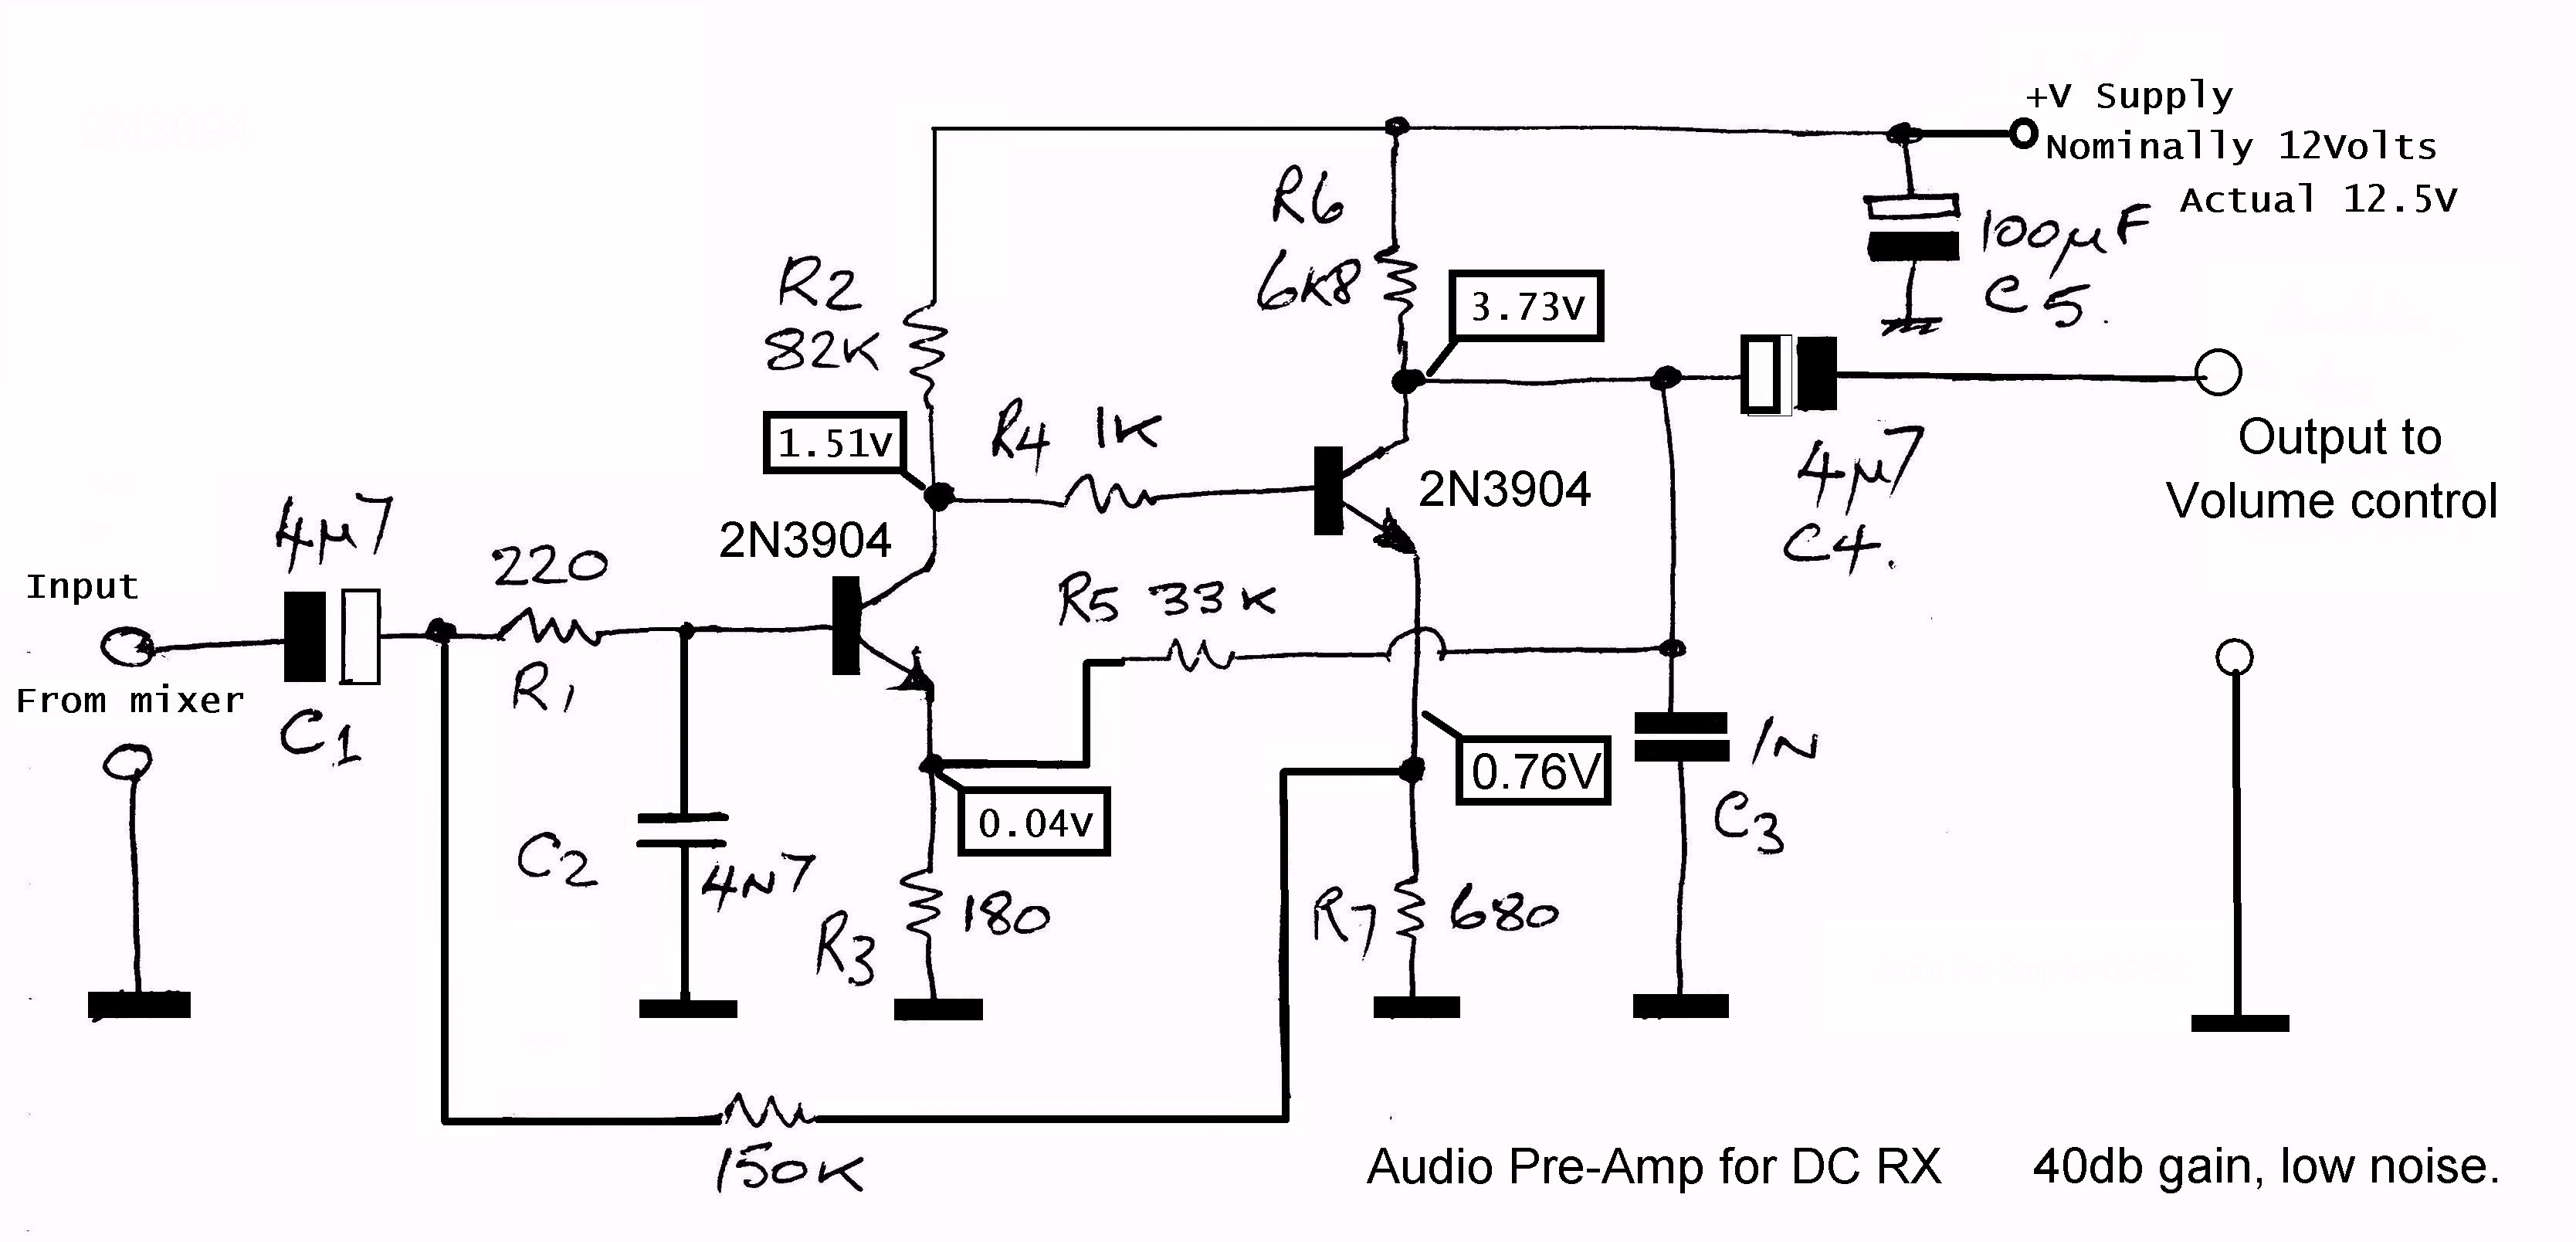 Simple Radio Diagram also Index147 additionally Simple Radio Diagram also Mic Pre  Circuit Diagram also Simple Mic Pre Based Lm358 Schematic Design. on simple mic pre based lm358